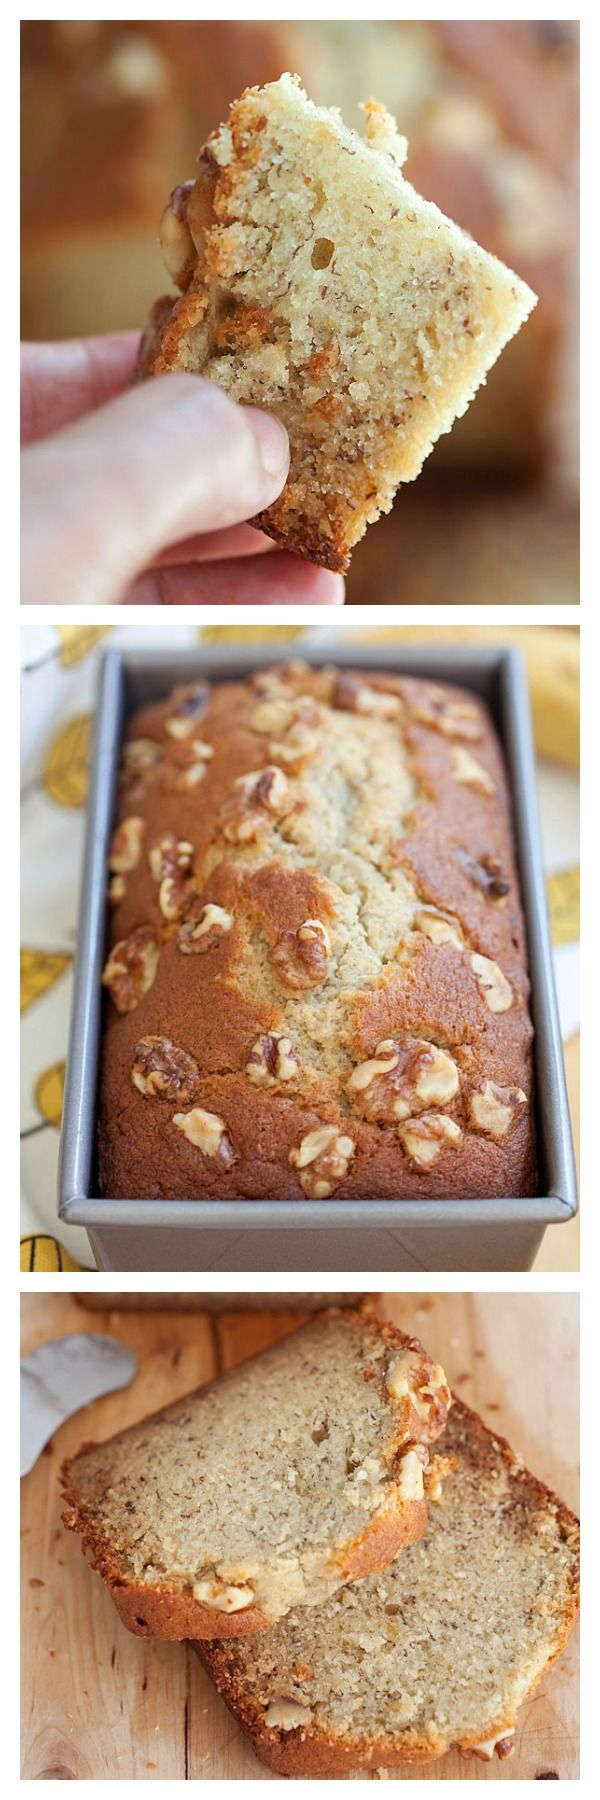 ... banana bread (banana cake) recipe yields the most delicious banana